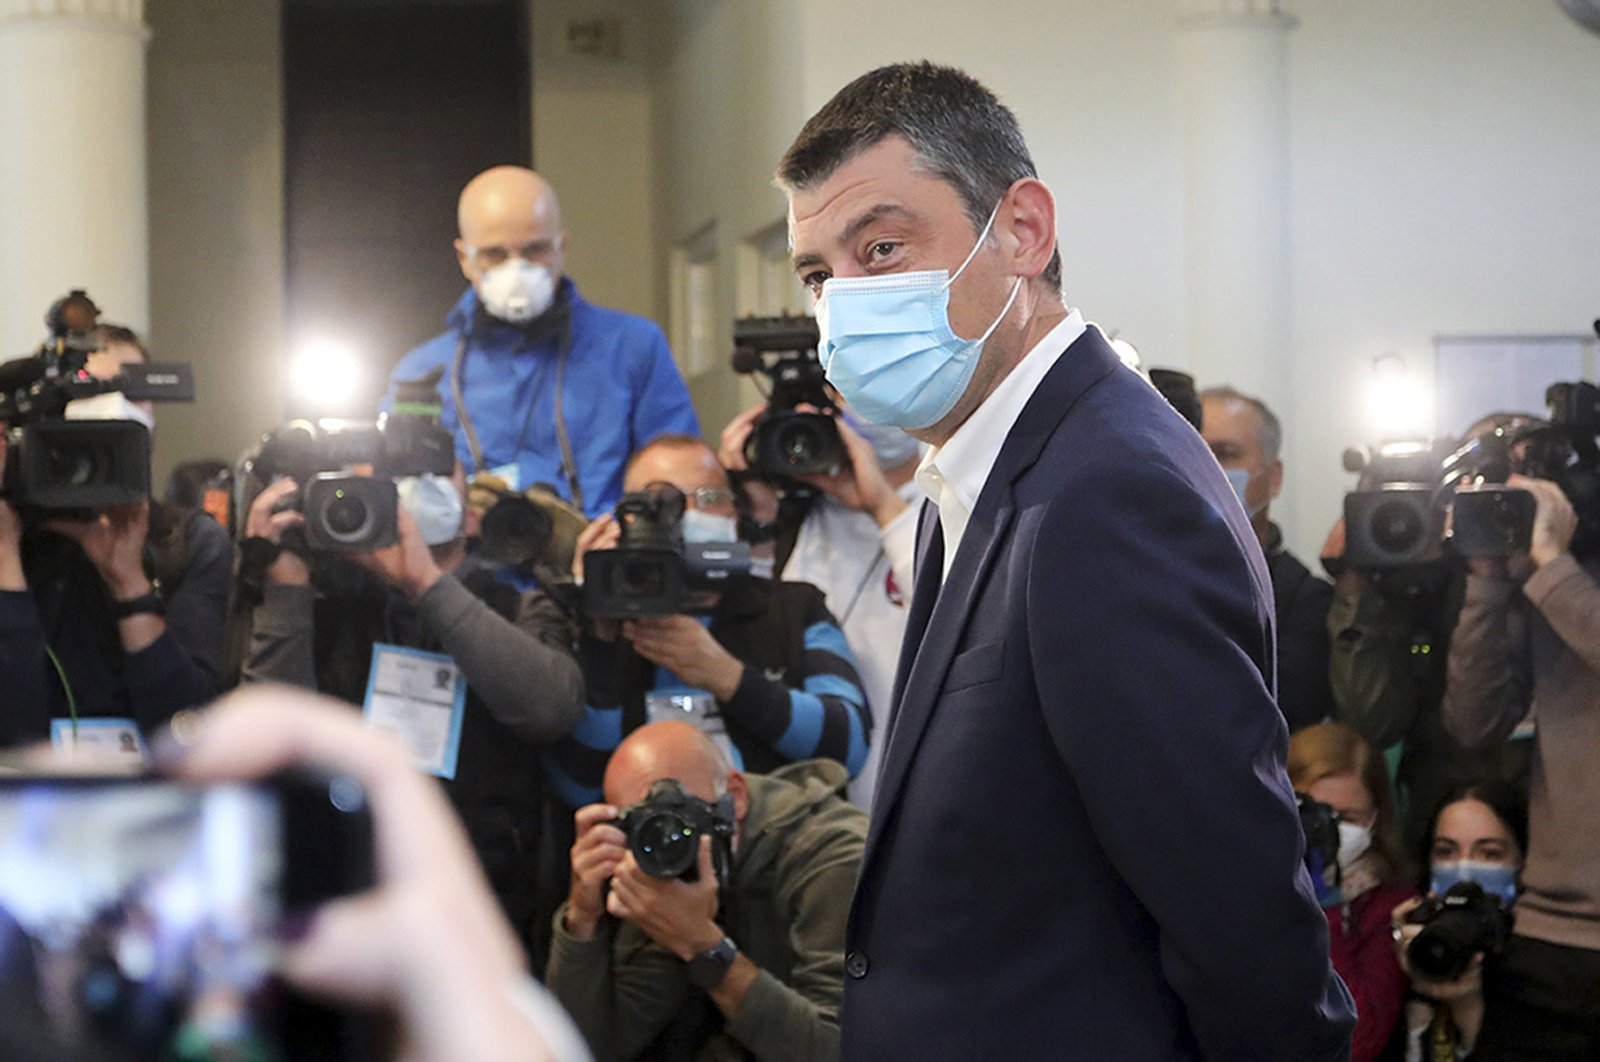 Georgia's Prime Minister Giorgi Gakharia, wearing a mask to help curb the spread of the coronavirus, speaks to the media after voting at a polling station during the parliamentary elections in Tbilisi, Georgia, Oct. 31, 2020. (Georgia's Prime Minister Press office via AP)